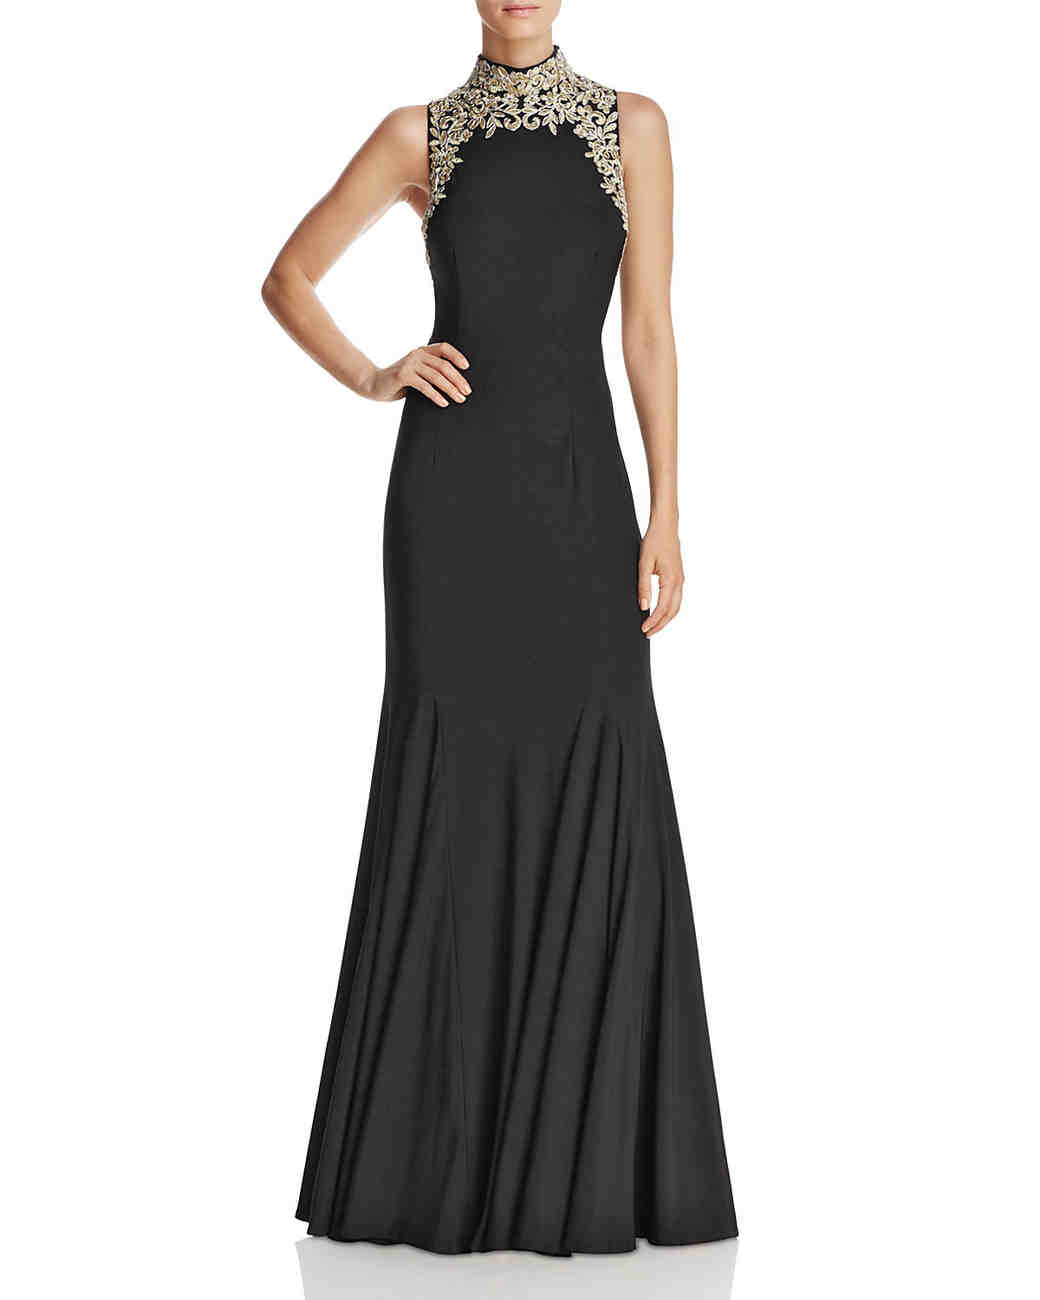 Avery G Embroidered Gown